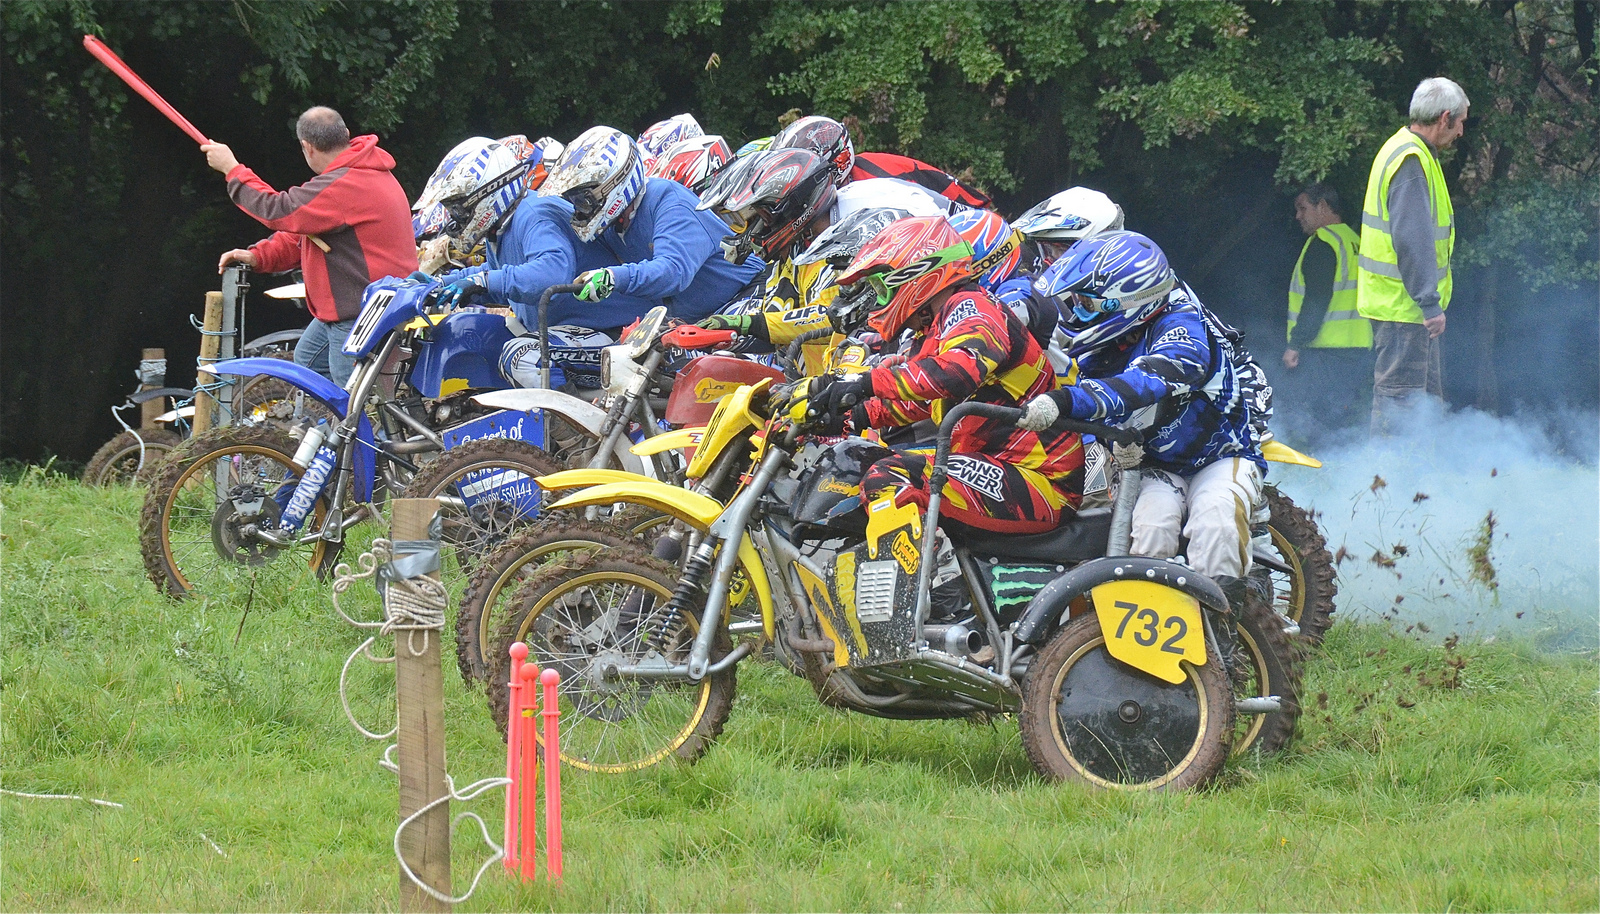 Llanthony Classic Scramble Photos September 2015 classicdirtbikerider.com..21